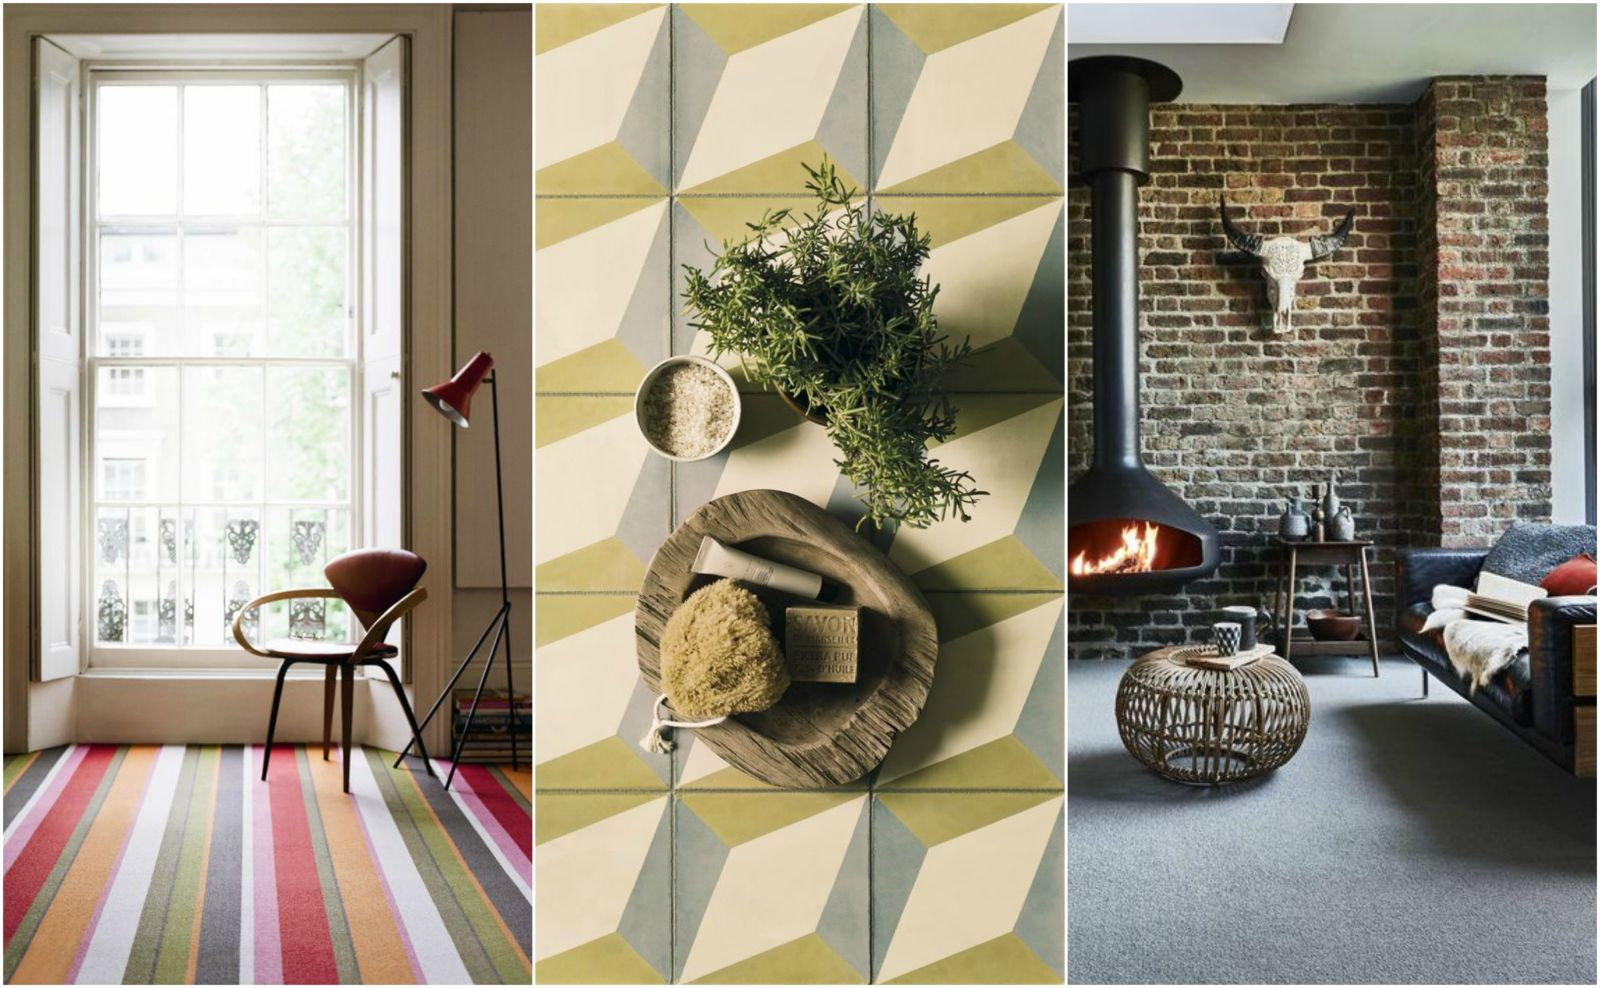 Achieve A Fabulous Look With The Latest Flooring Trends Ideas To Suit Every Room Of